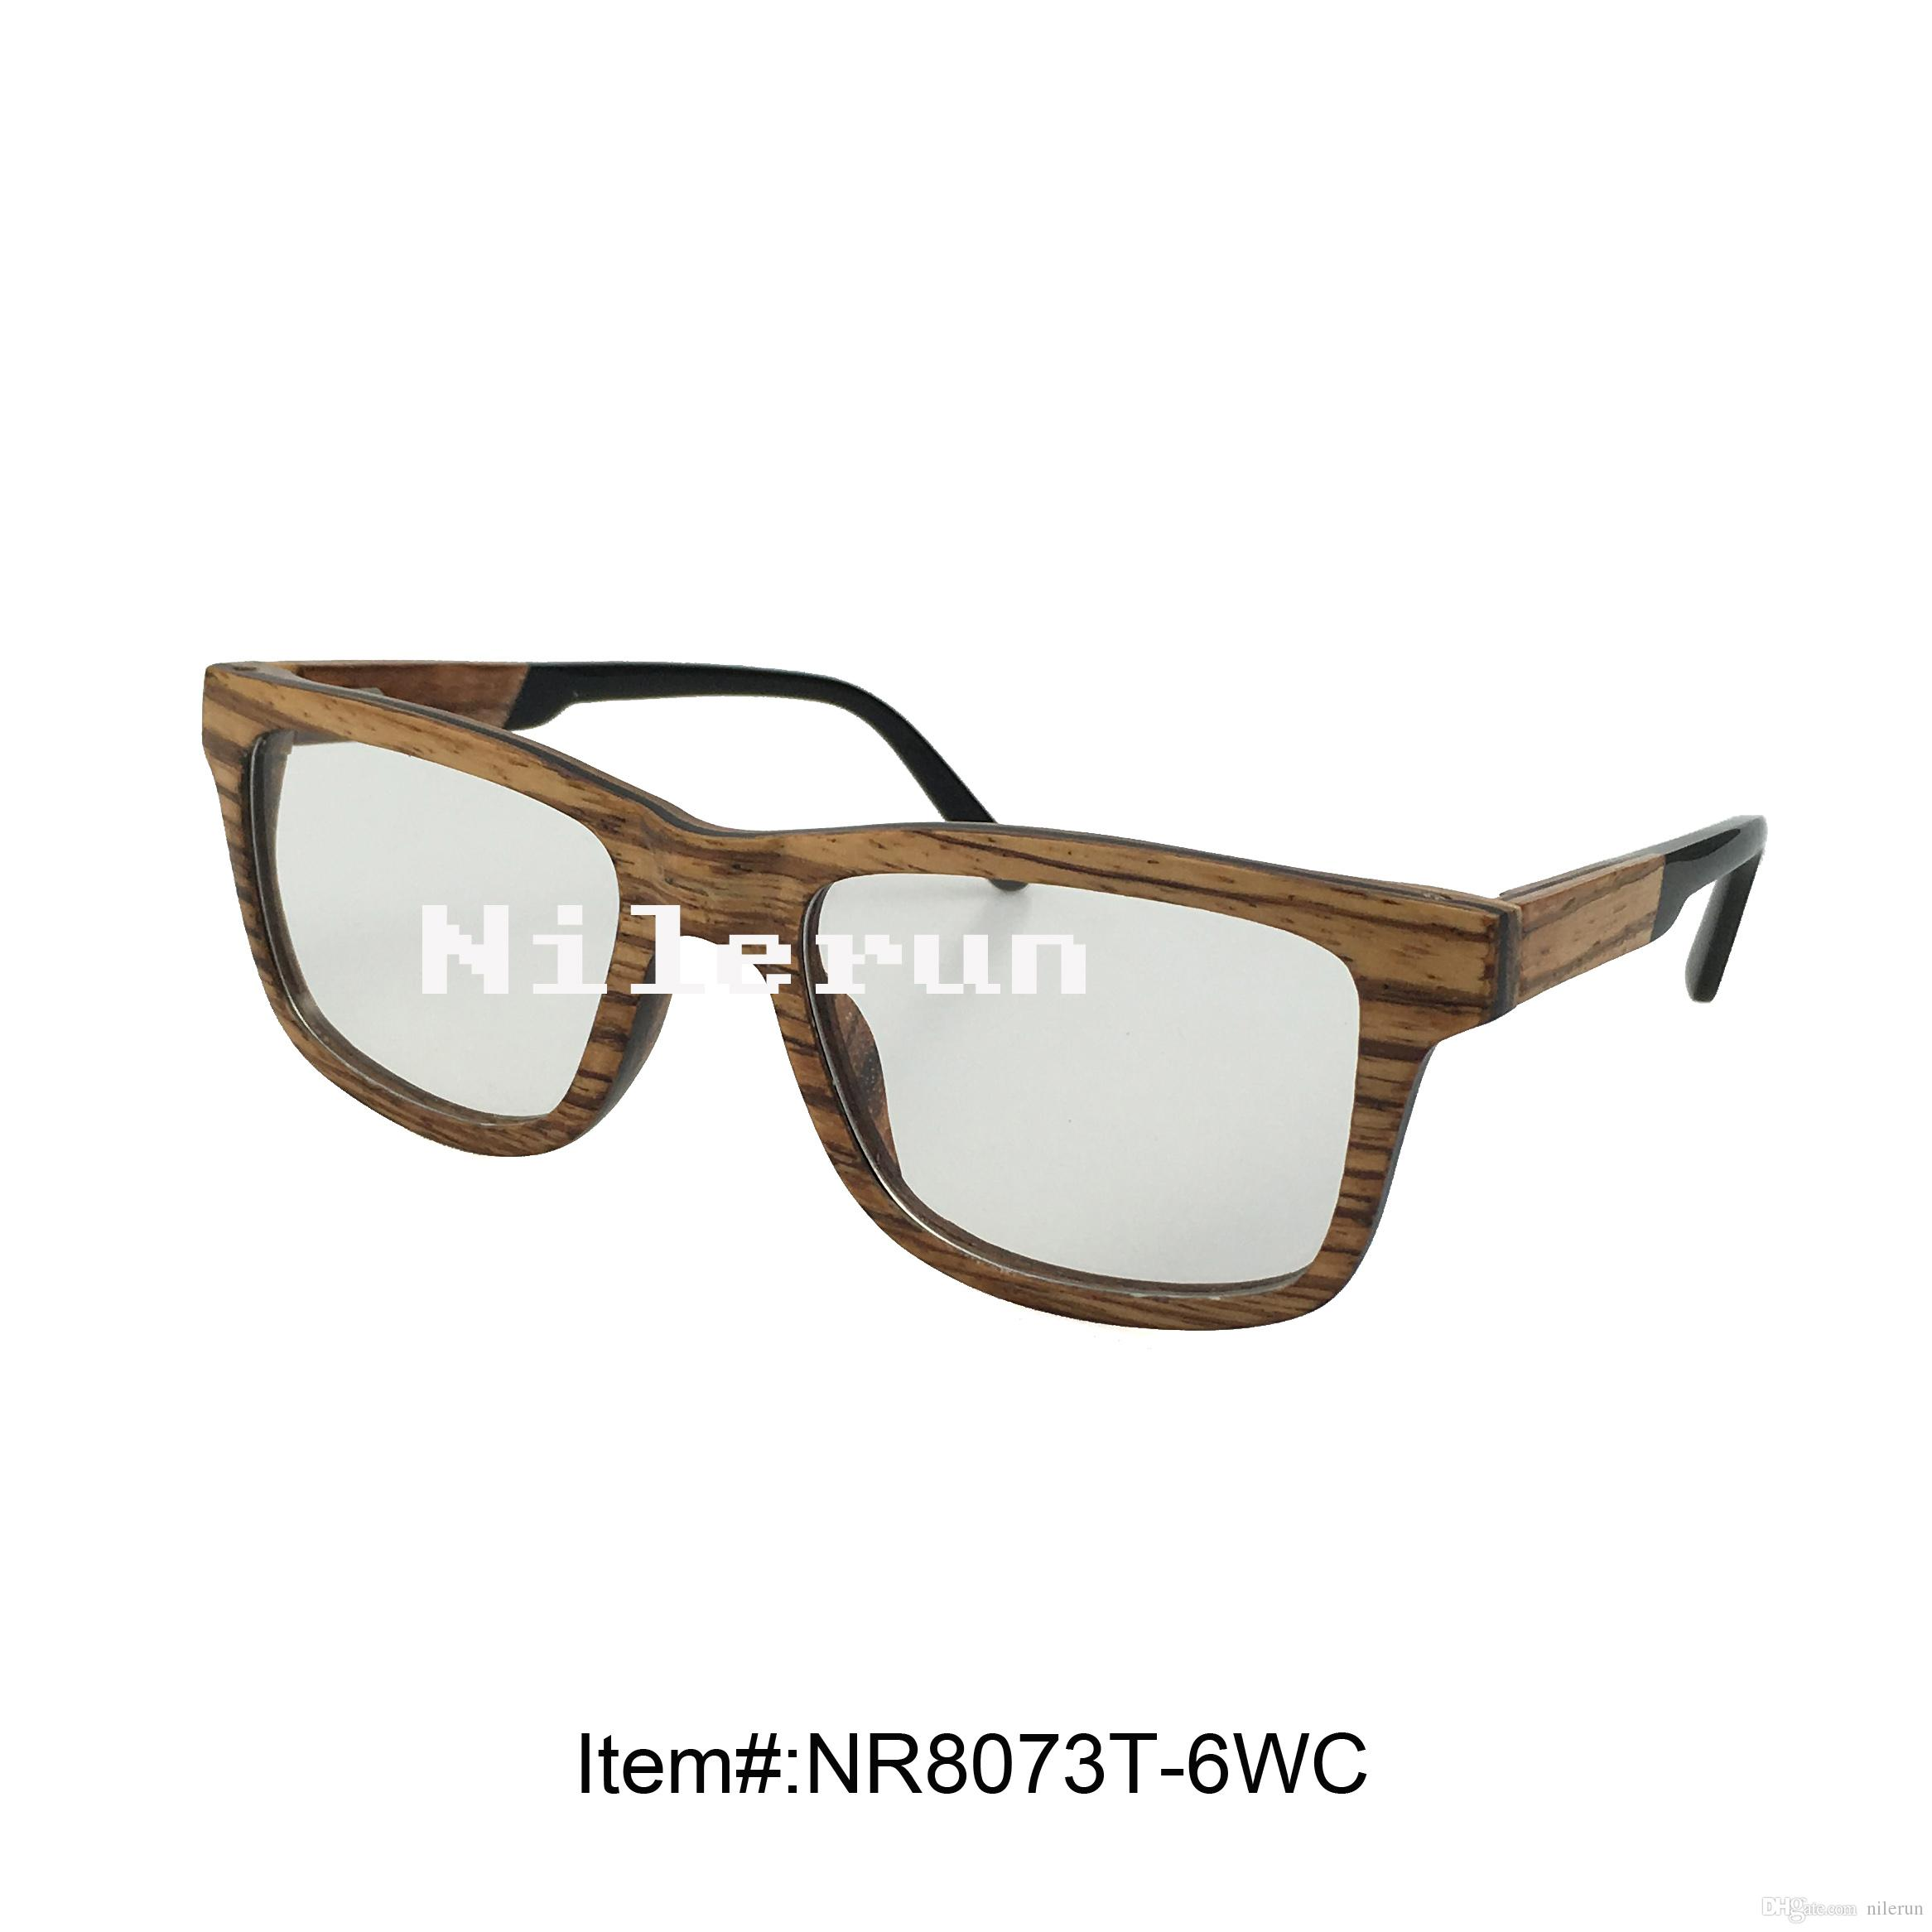 ae4a6b87181 Fashion Square Hand Made Zebra Wood Frame Optical Glasses Boots Glasses  Frames Buy Frames From Nilerun